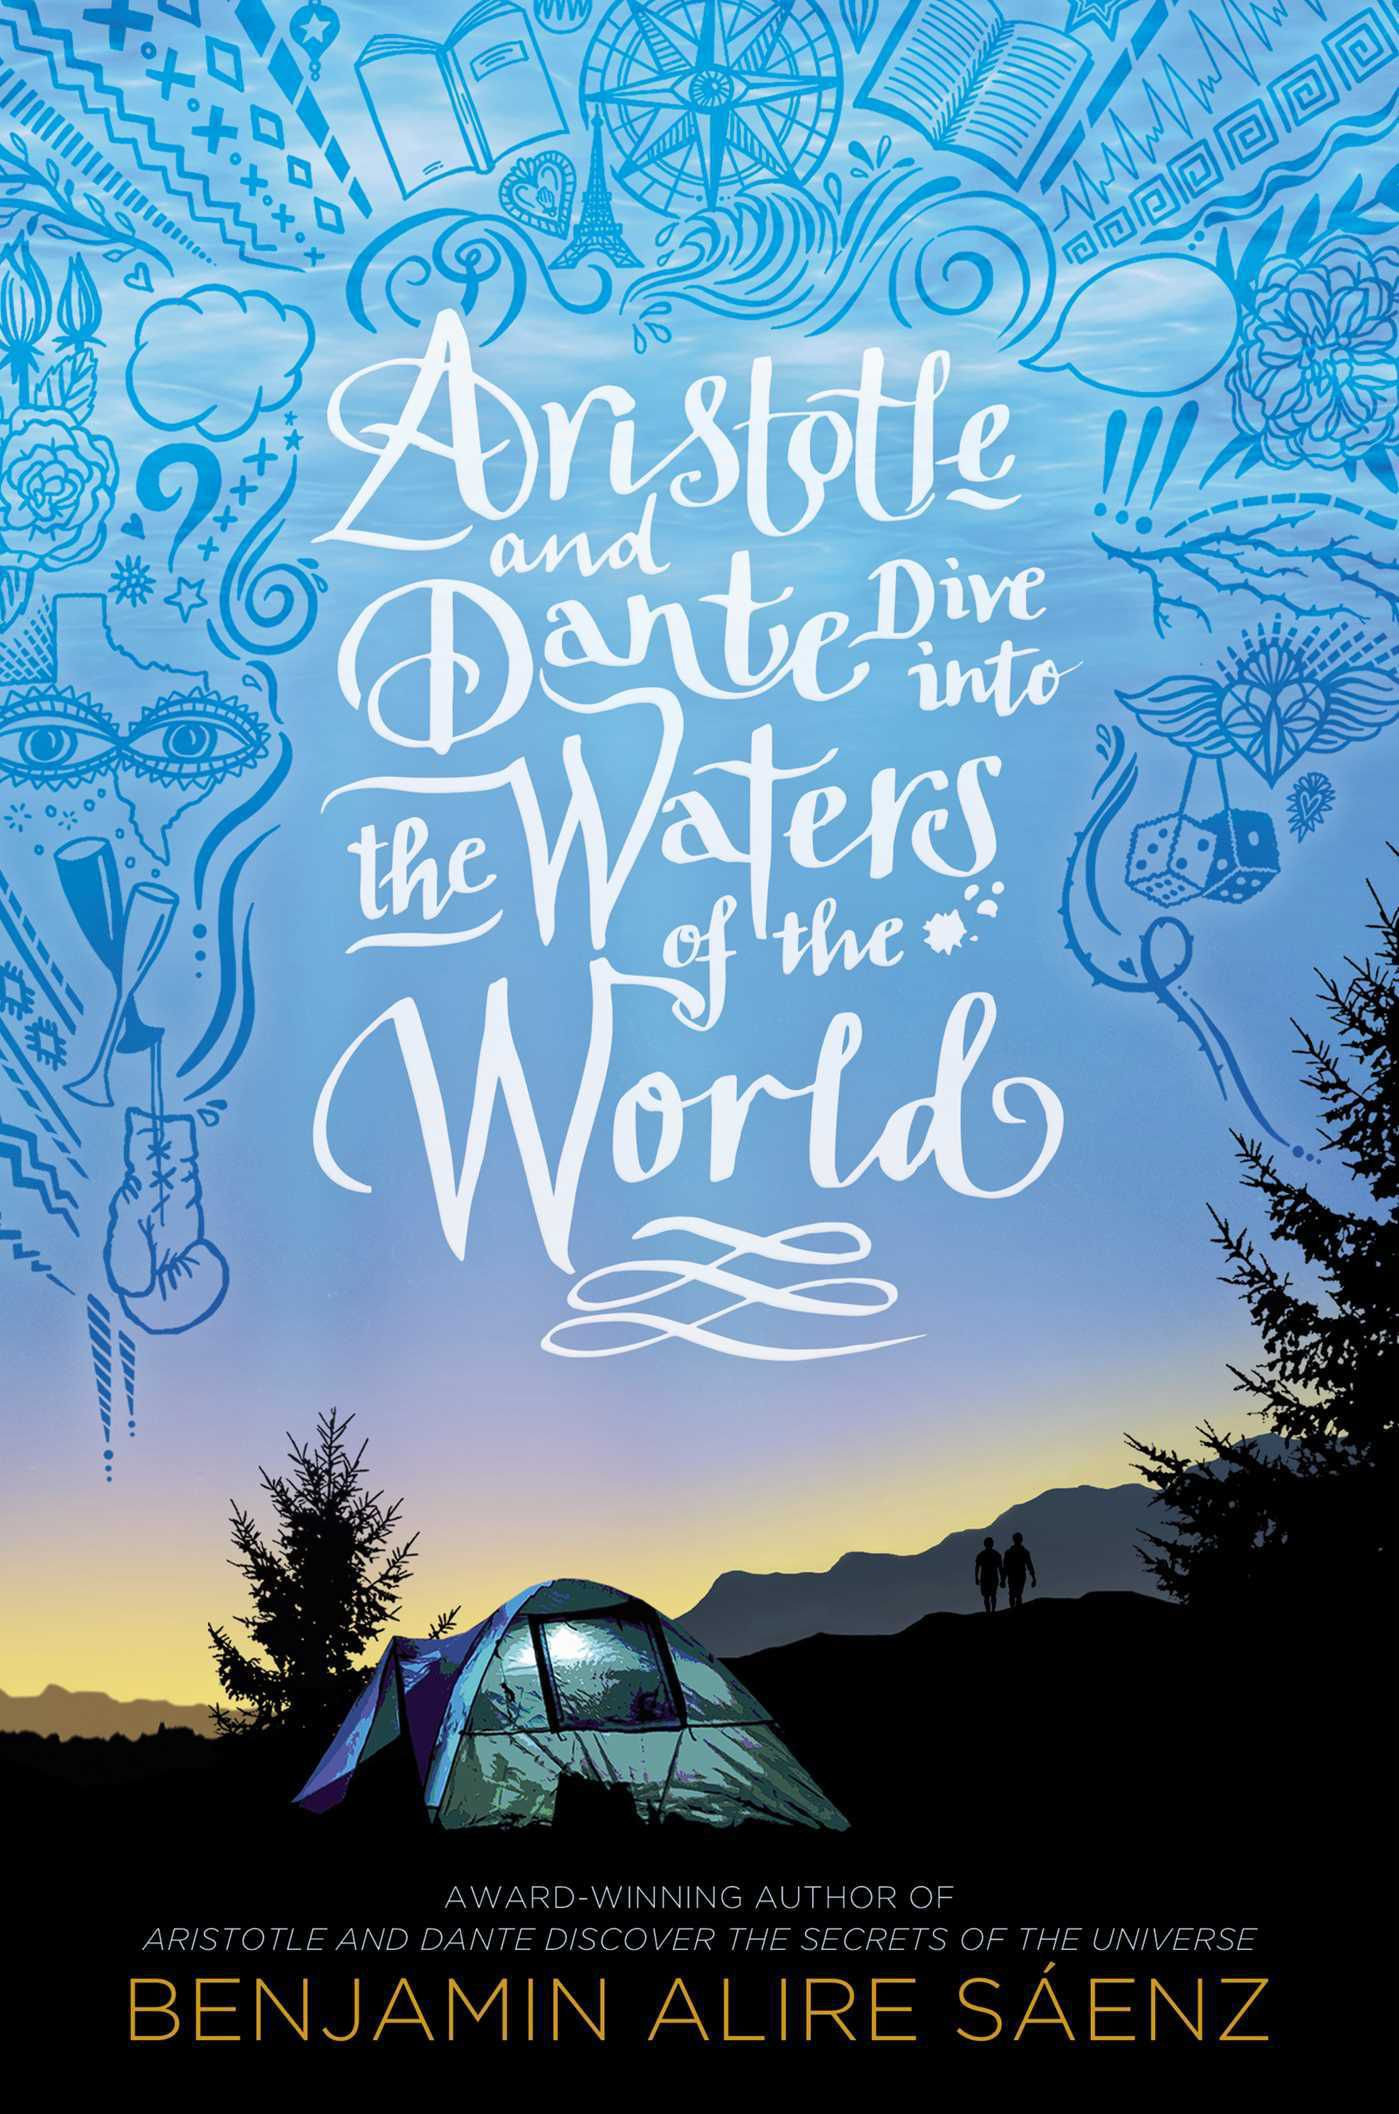 Book cover of ARISTOTLE AND DANTE DIVE INTO THE WATERS OF THE WORLD by Benjamin Alire Sáenz